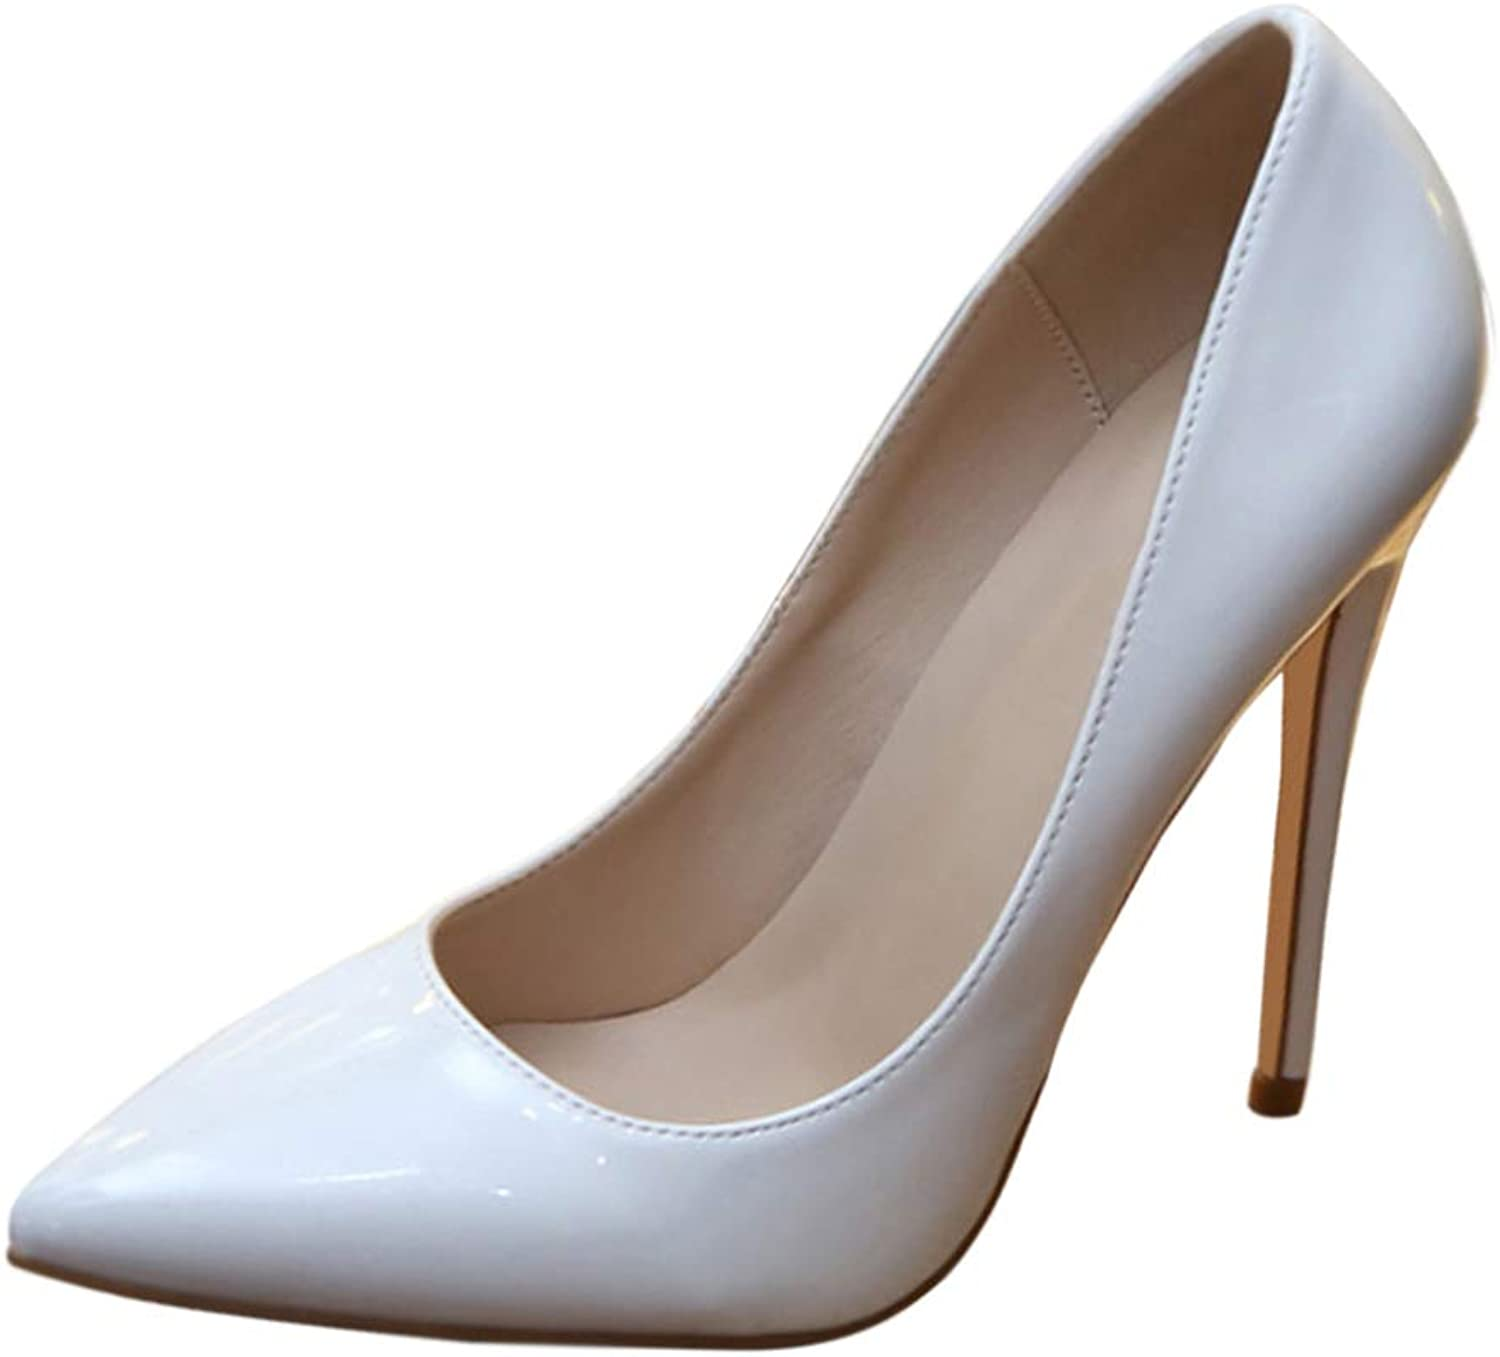 Uirend Elegant Wedding Stiletto - Womens Formal Court shoes Pointed Toe Patent Leather Slip On Evening Pump shoes Stilettos Size